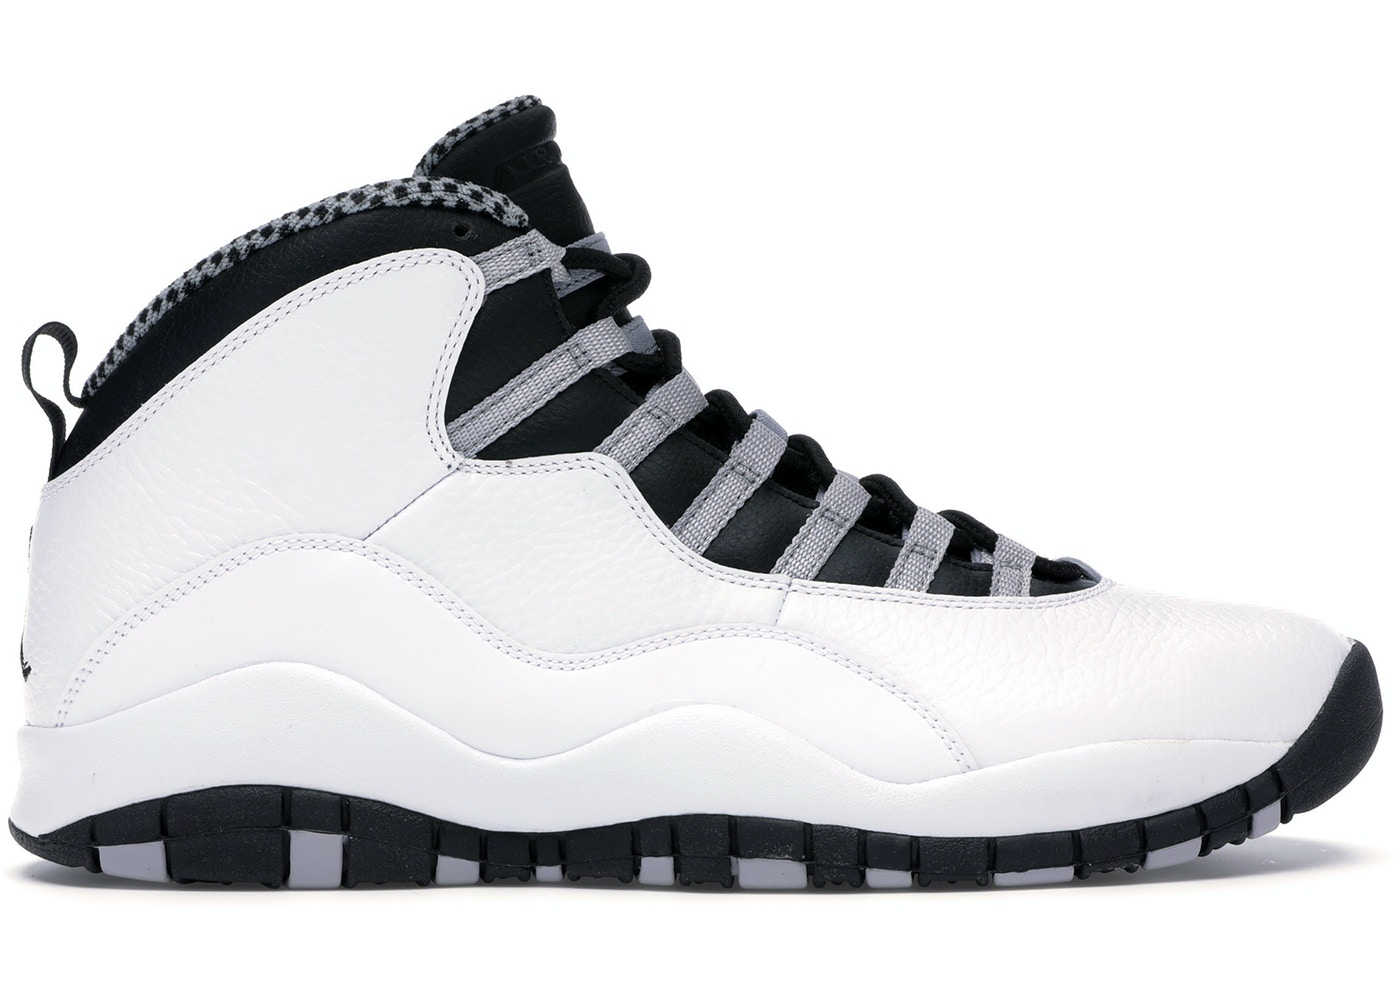 online store 3087e d1407 Buy Air Jordan 10 Shoes & Deadstock Sneakers